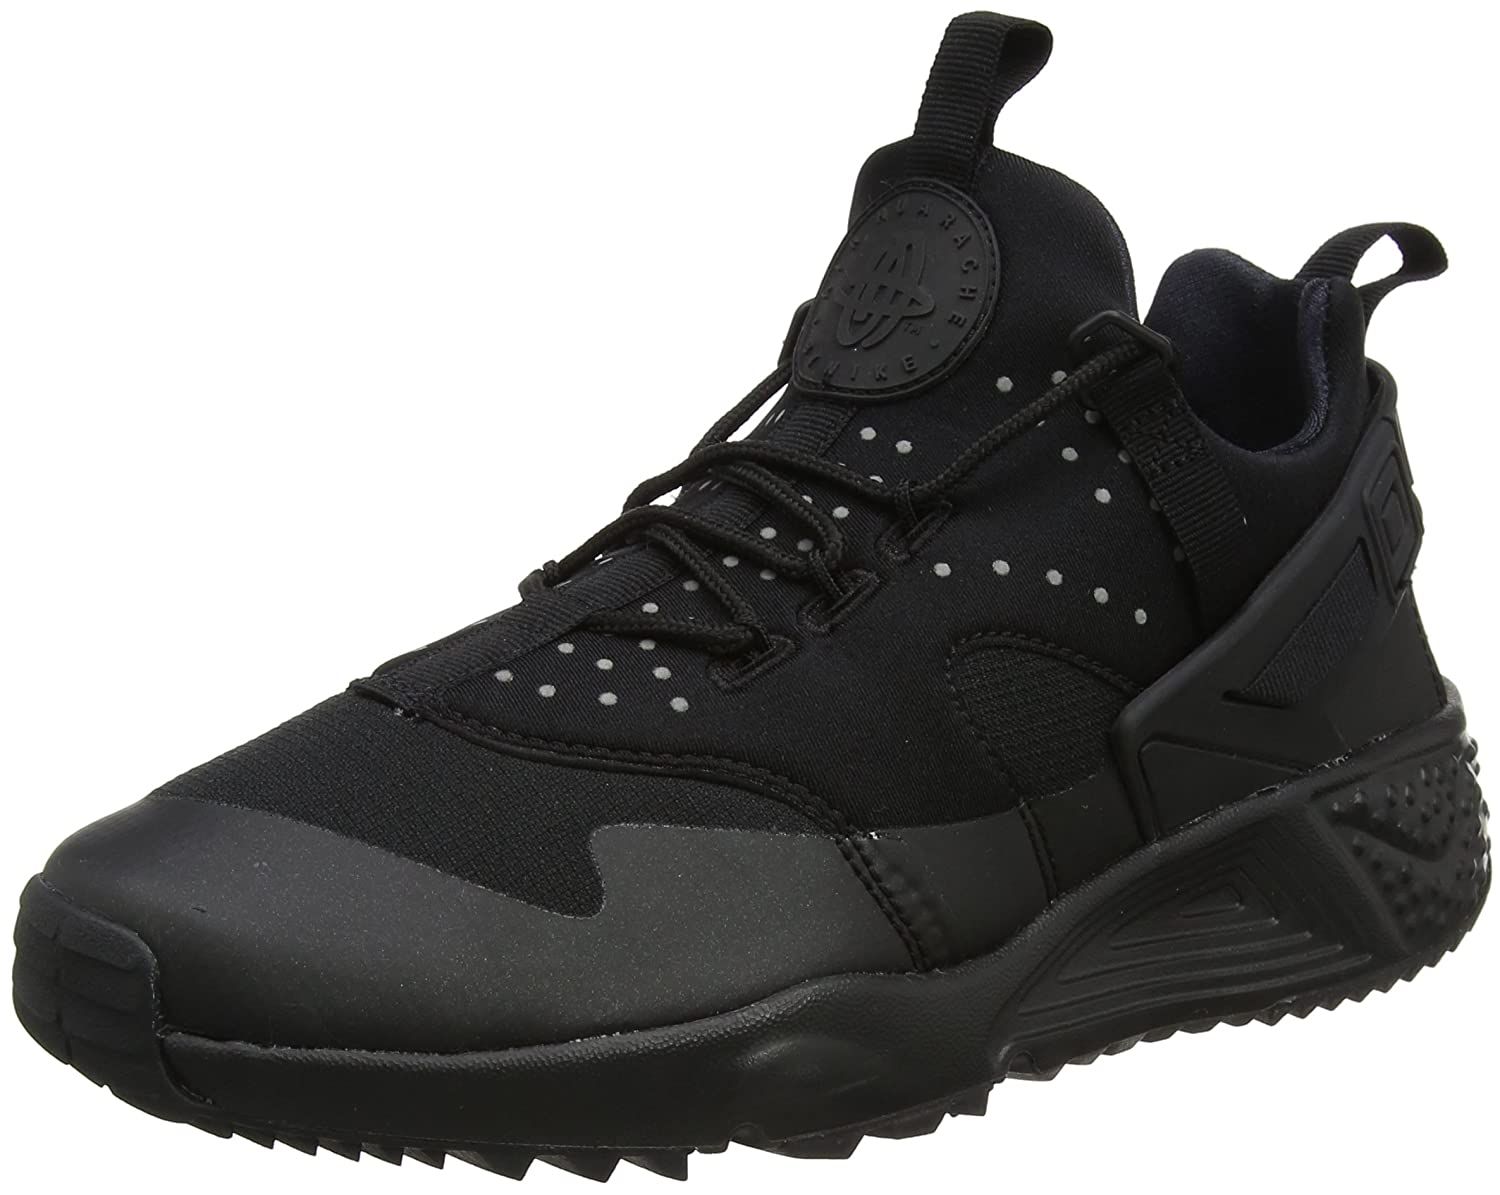 sale retailer 49a5f 93dd4 Nike Women's WMNS Air Huarache Run Trainers